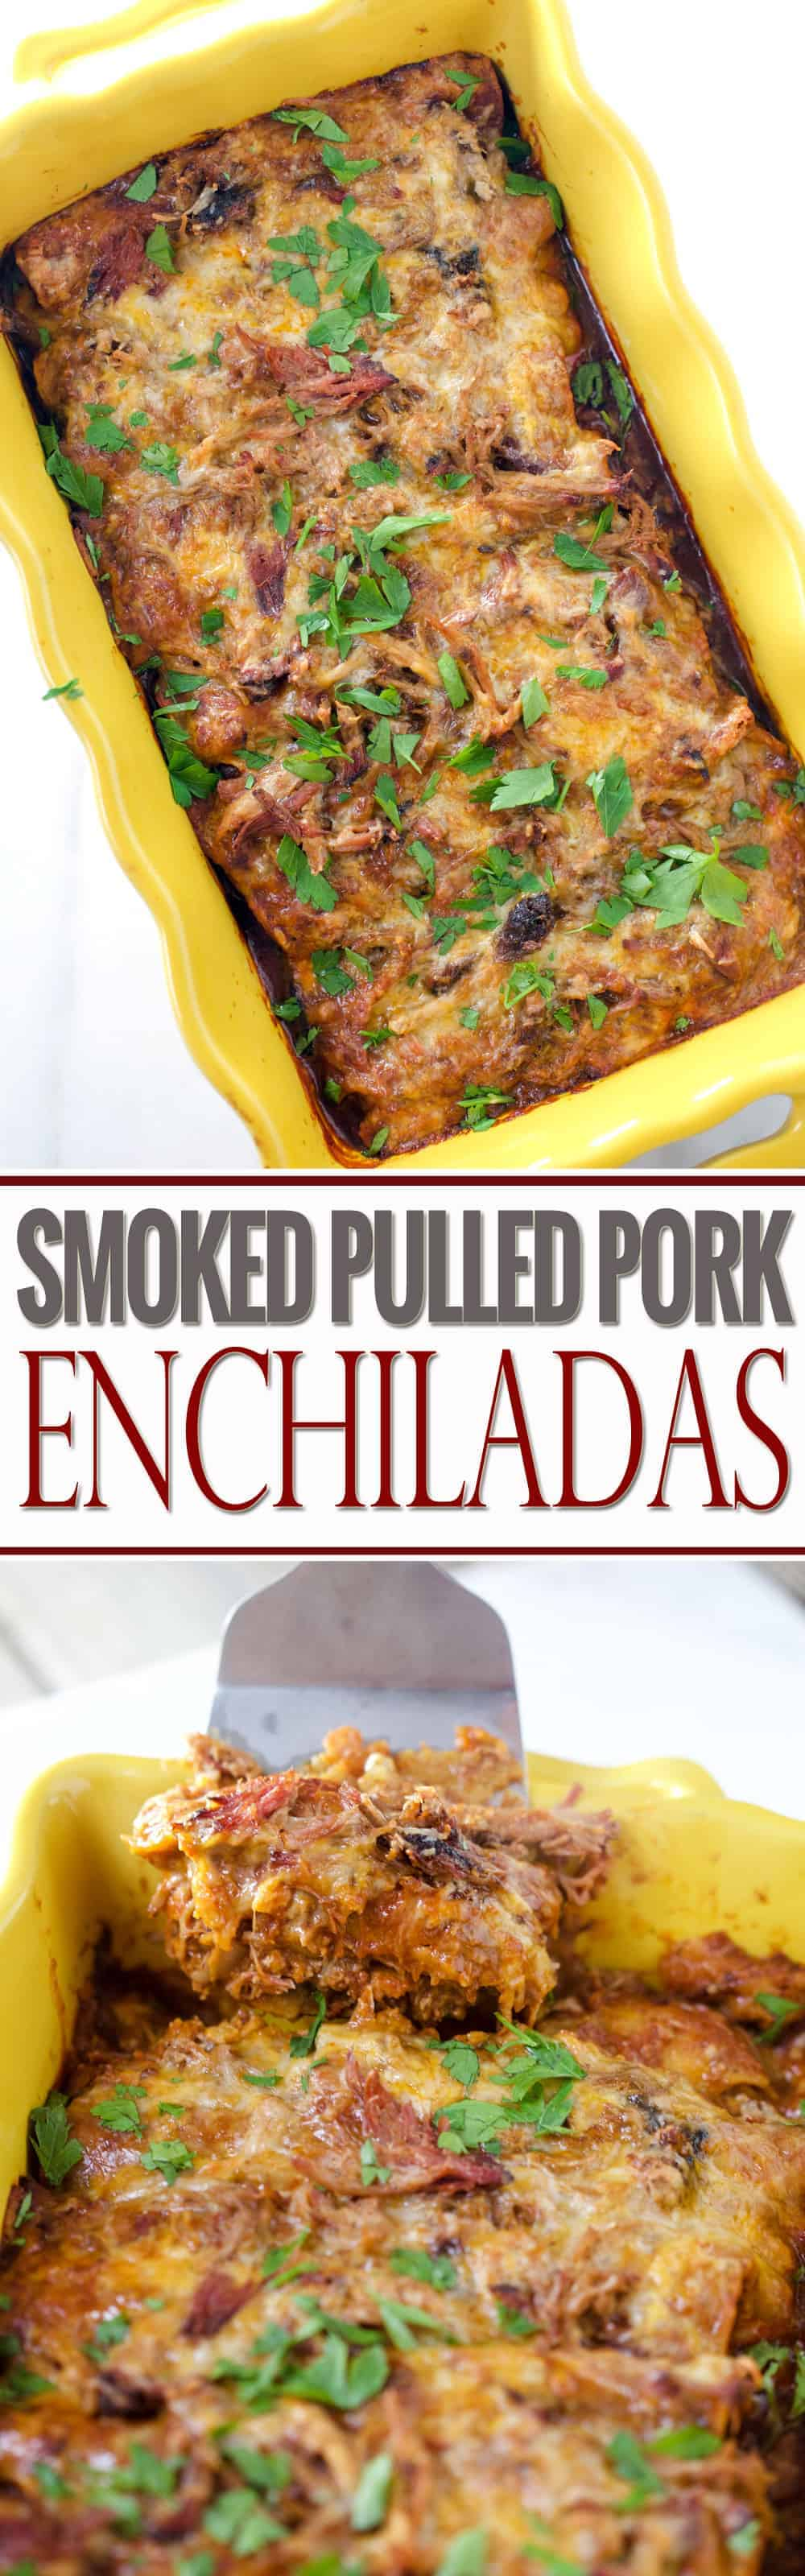 Smoked Pulled Pork Enchiladas and other awesome Cindo de Mayo recipes for your smoker or grill